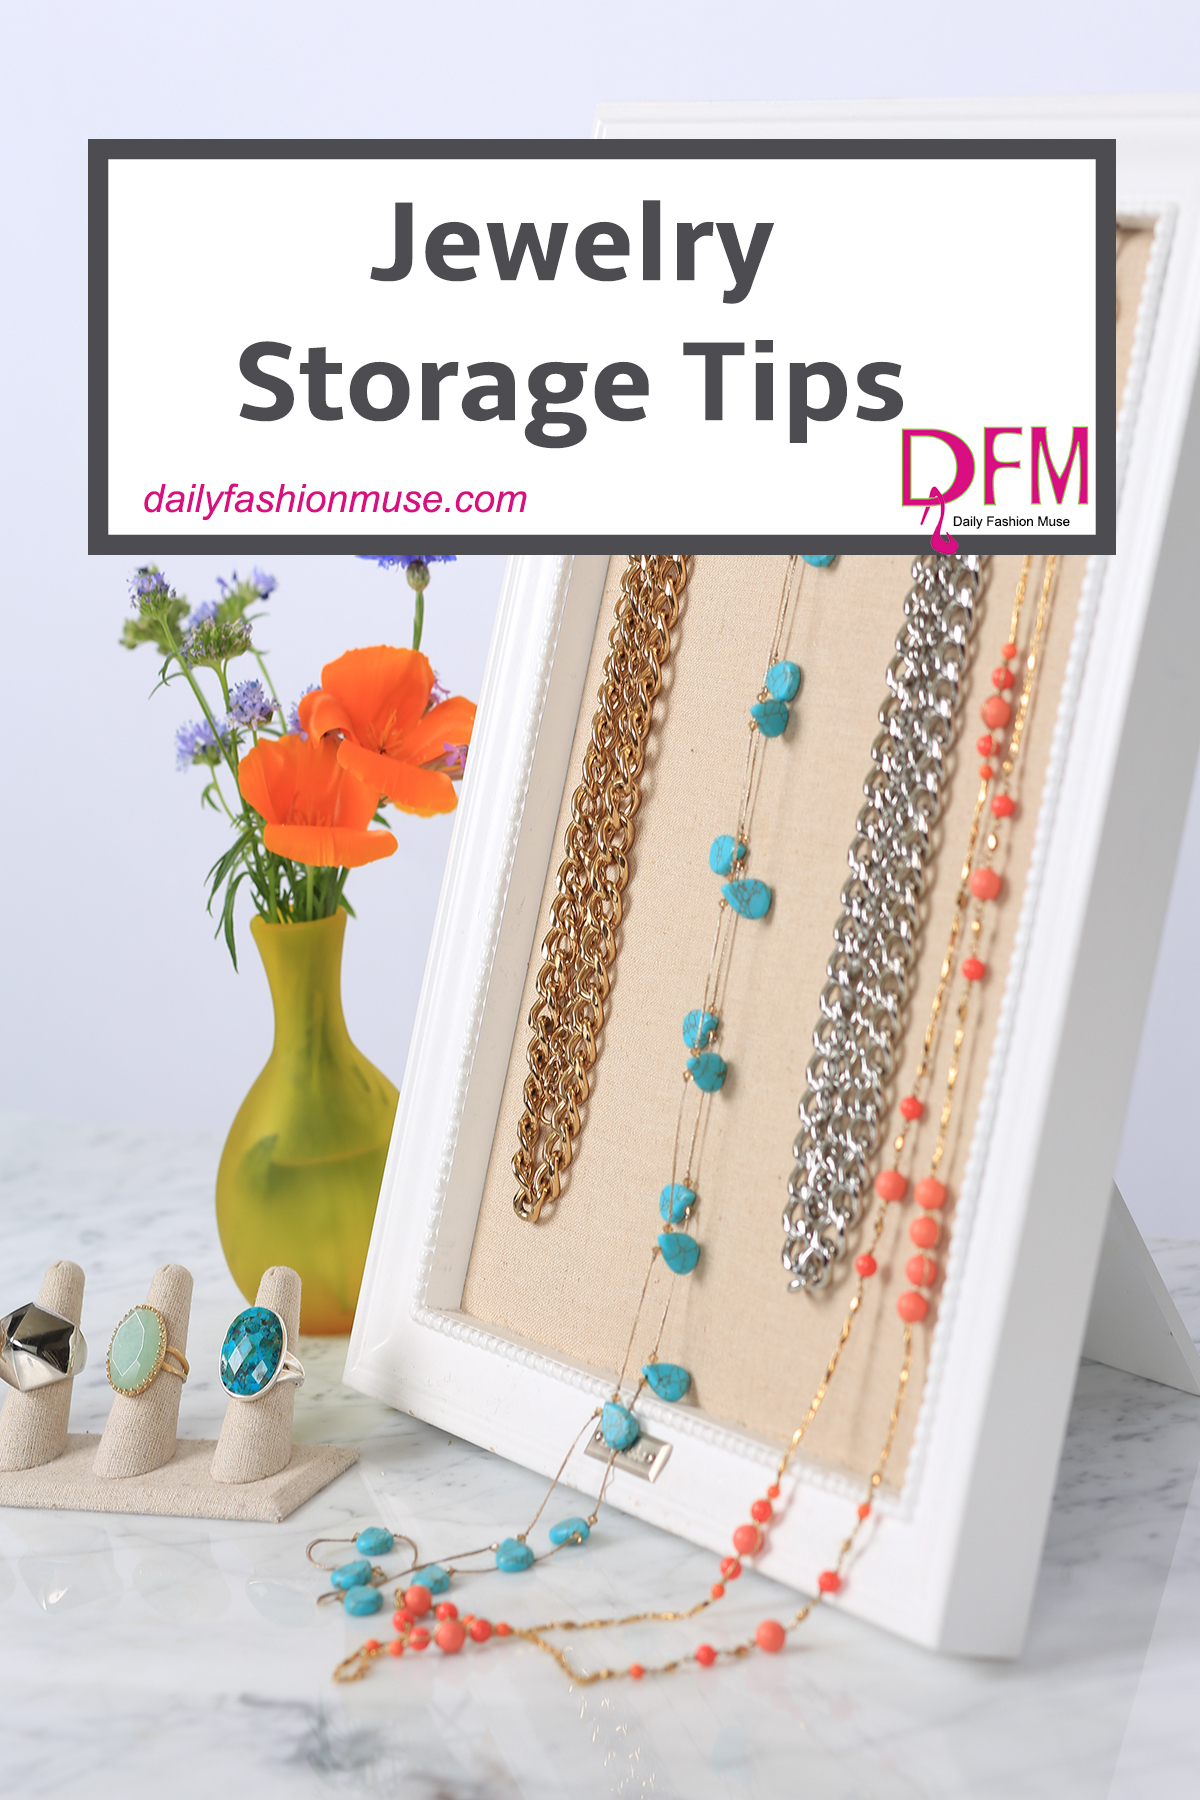 Jewelry storage is key to keeping your pieces in good condition. Click through for some unique and affordable ways to store your jewelry.